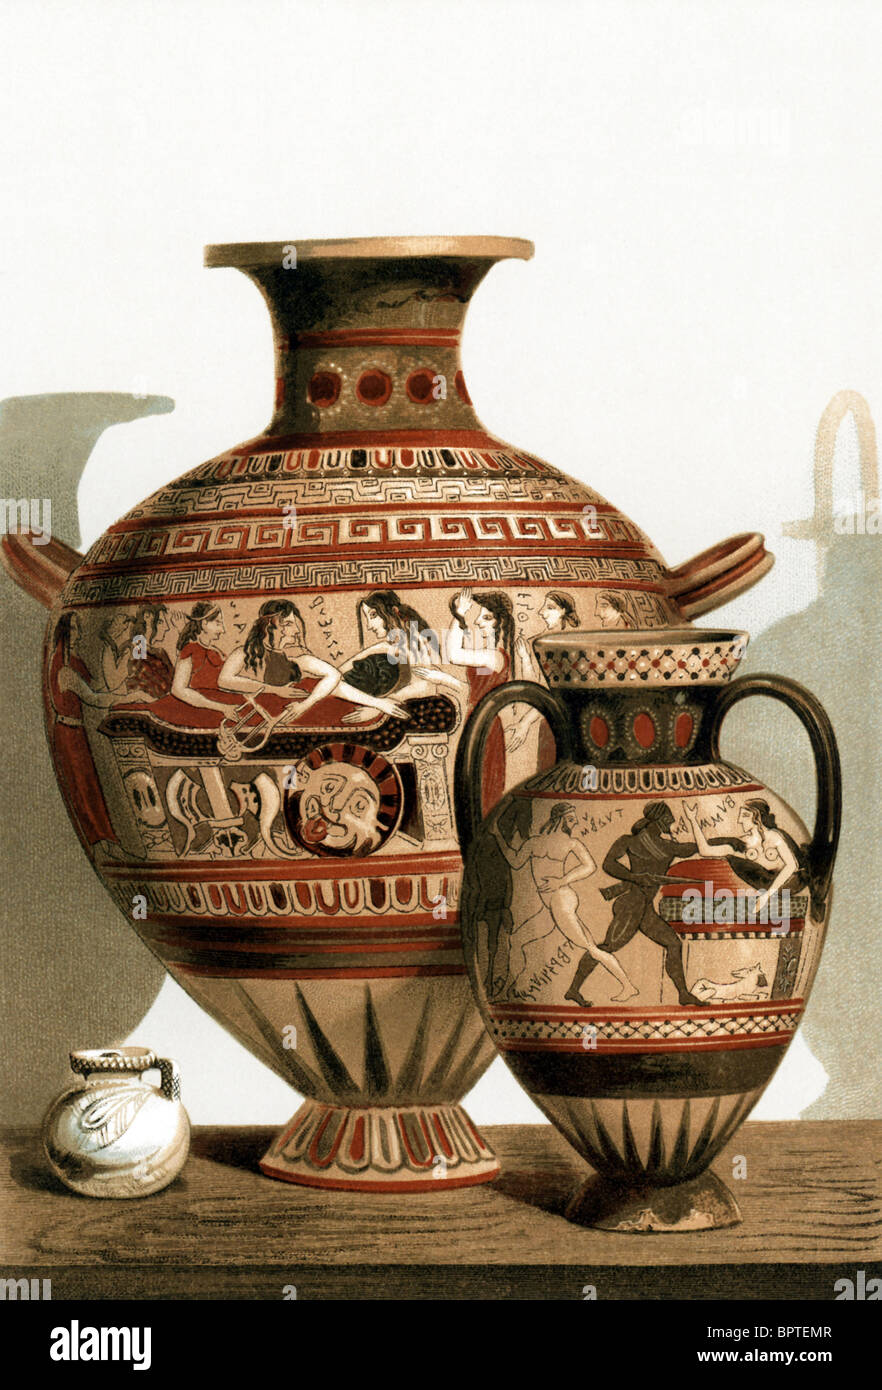 The painted vases represented here are corinthian vases stock the painted vases represented here are corinthian vases earthenware from corinth in central greece reviewsmspy